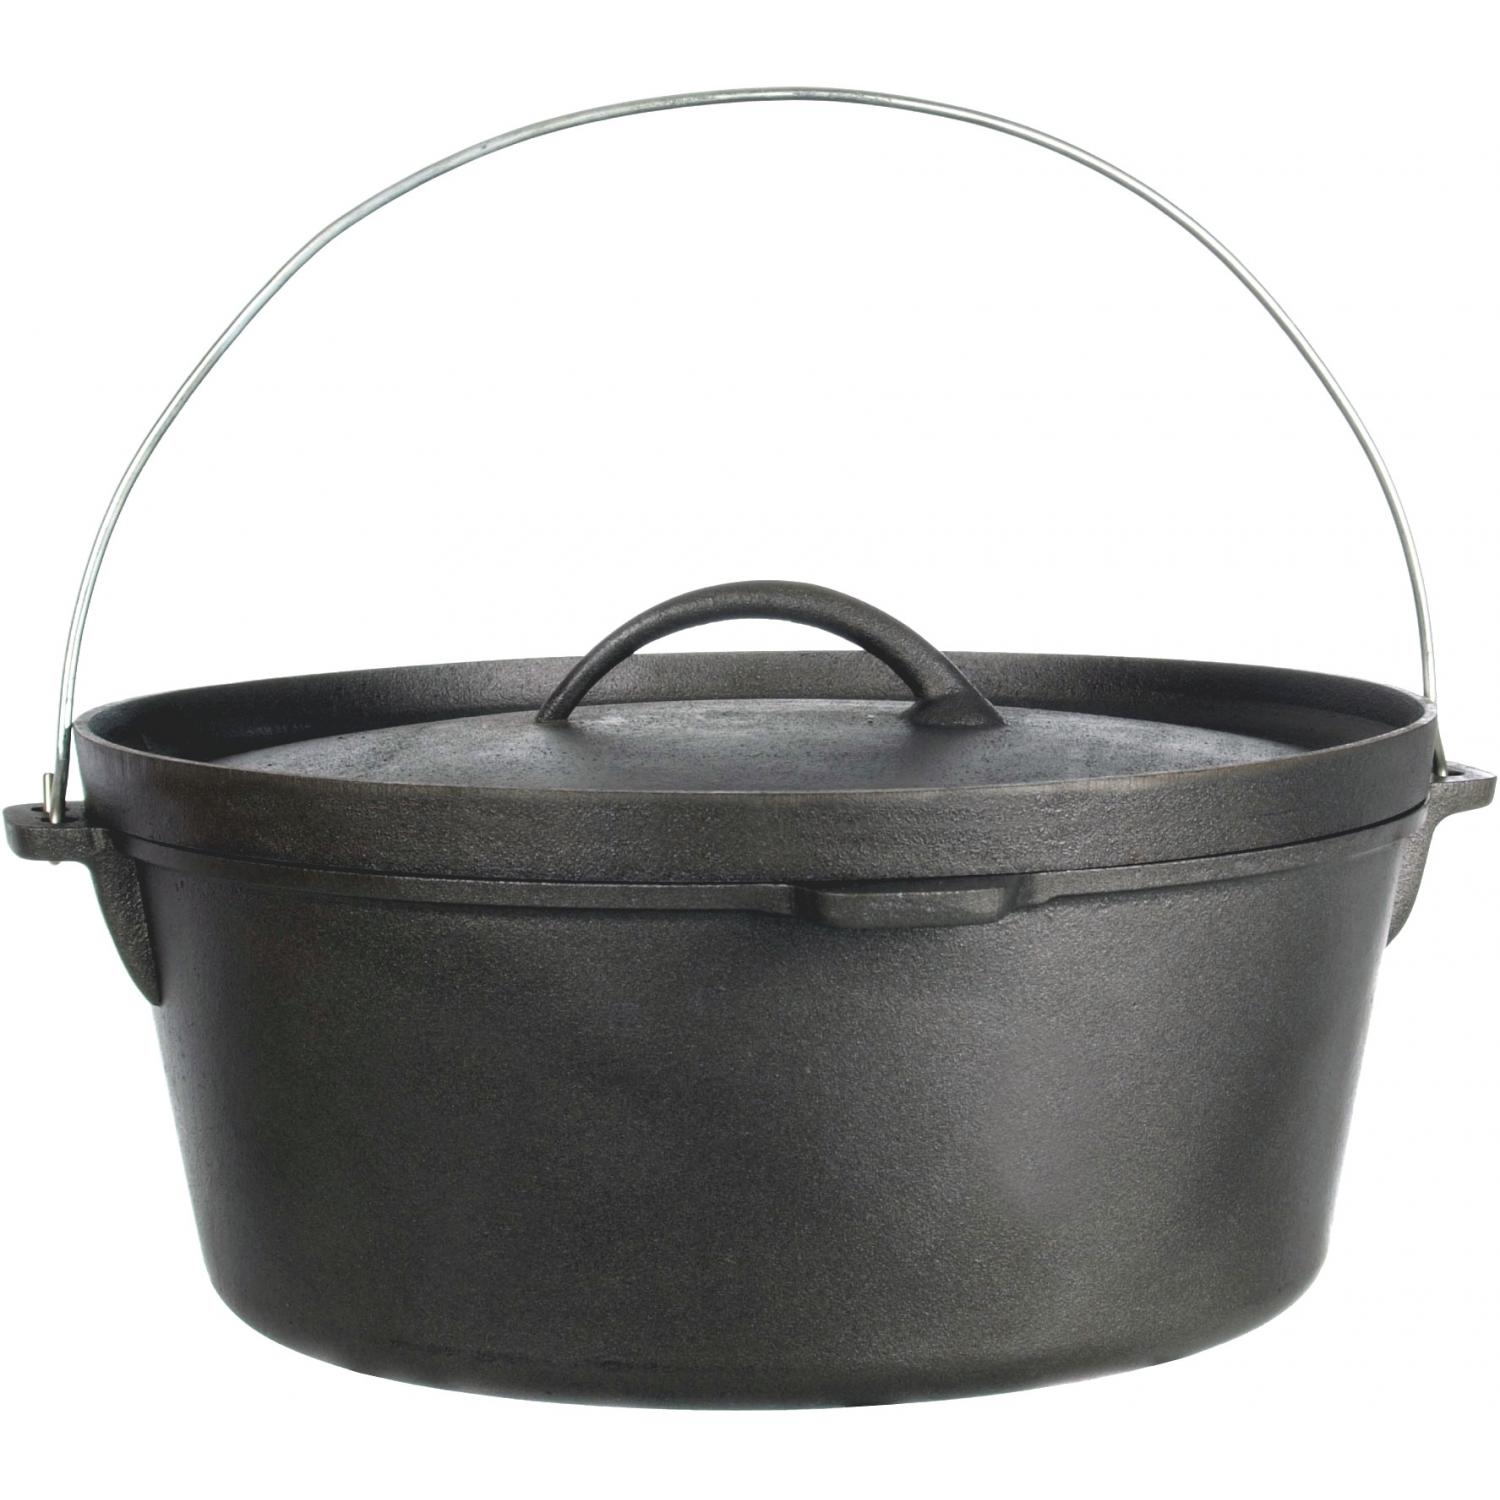 Cajun Cookware Pots 12-Quart Seasoned Cast Iron Camp Pot - GL10476S